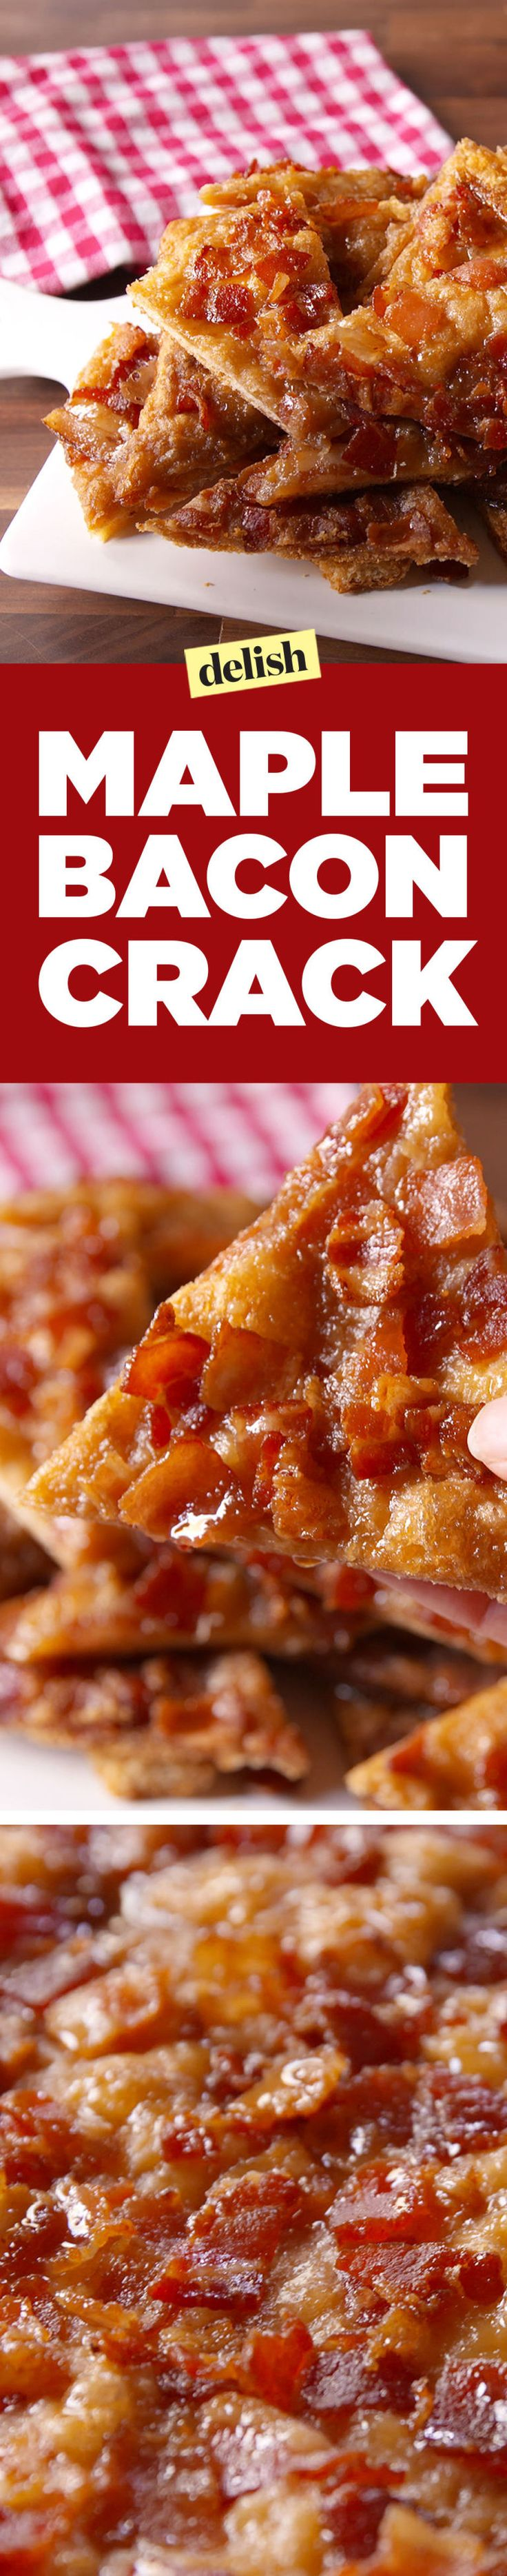 Maple Bacon Crack Is Exactly What It Sounds Like  - Delish.com